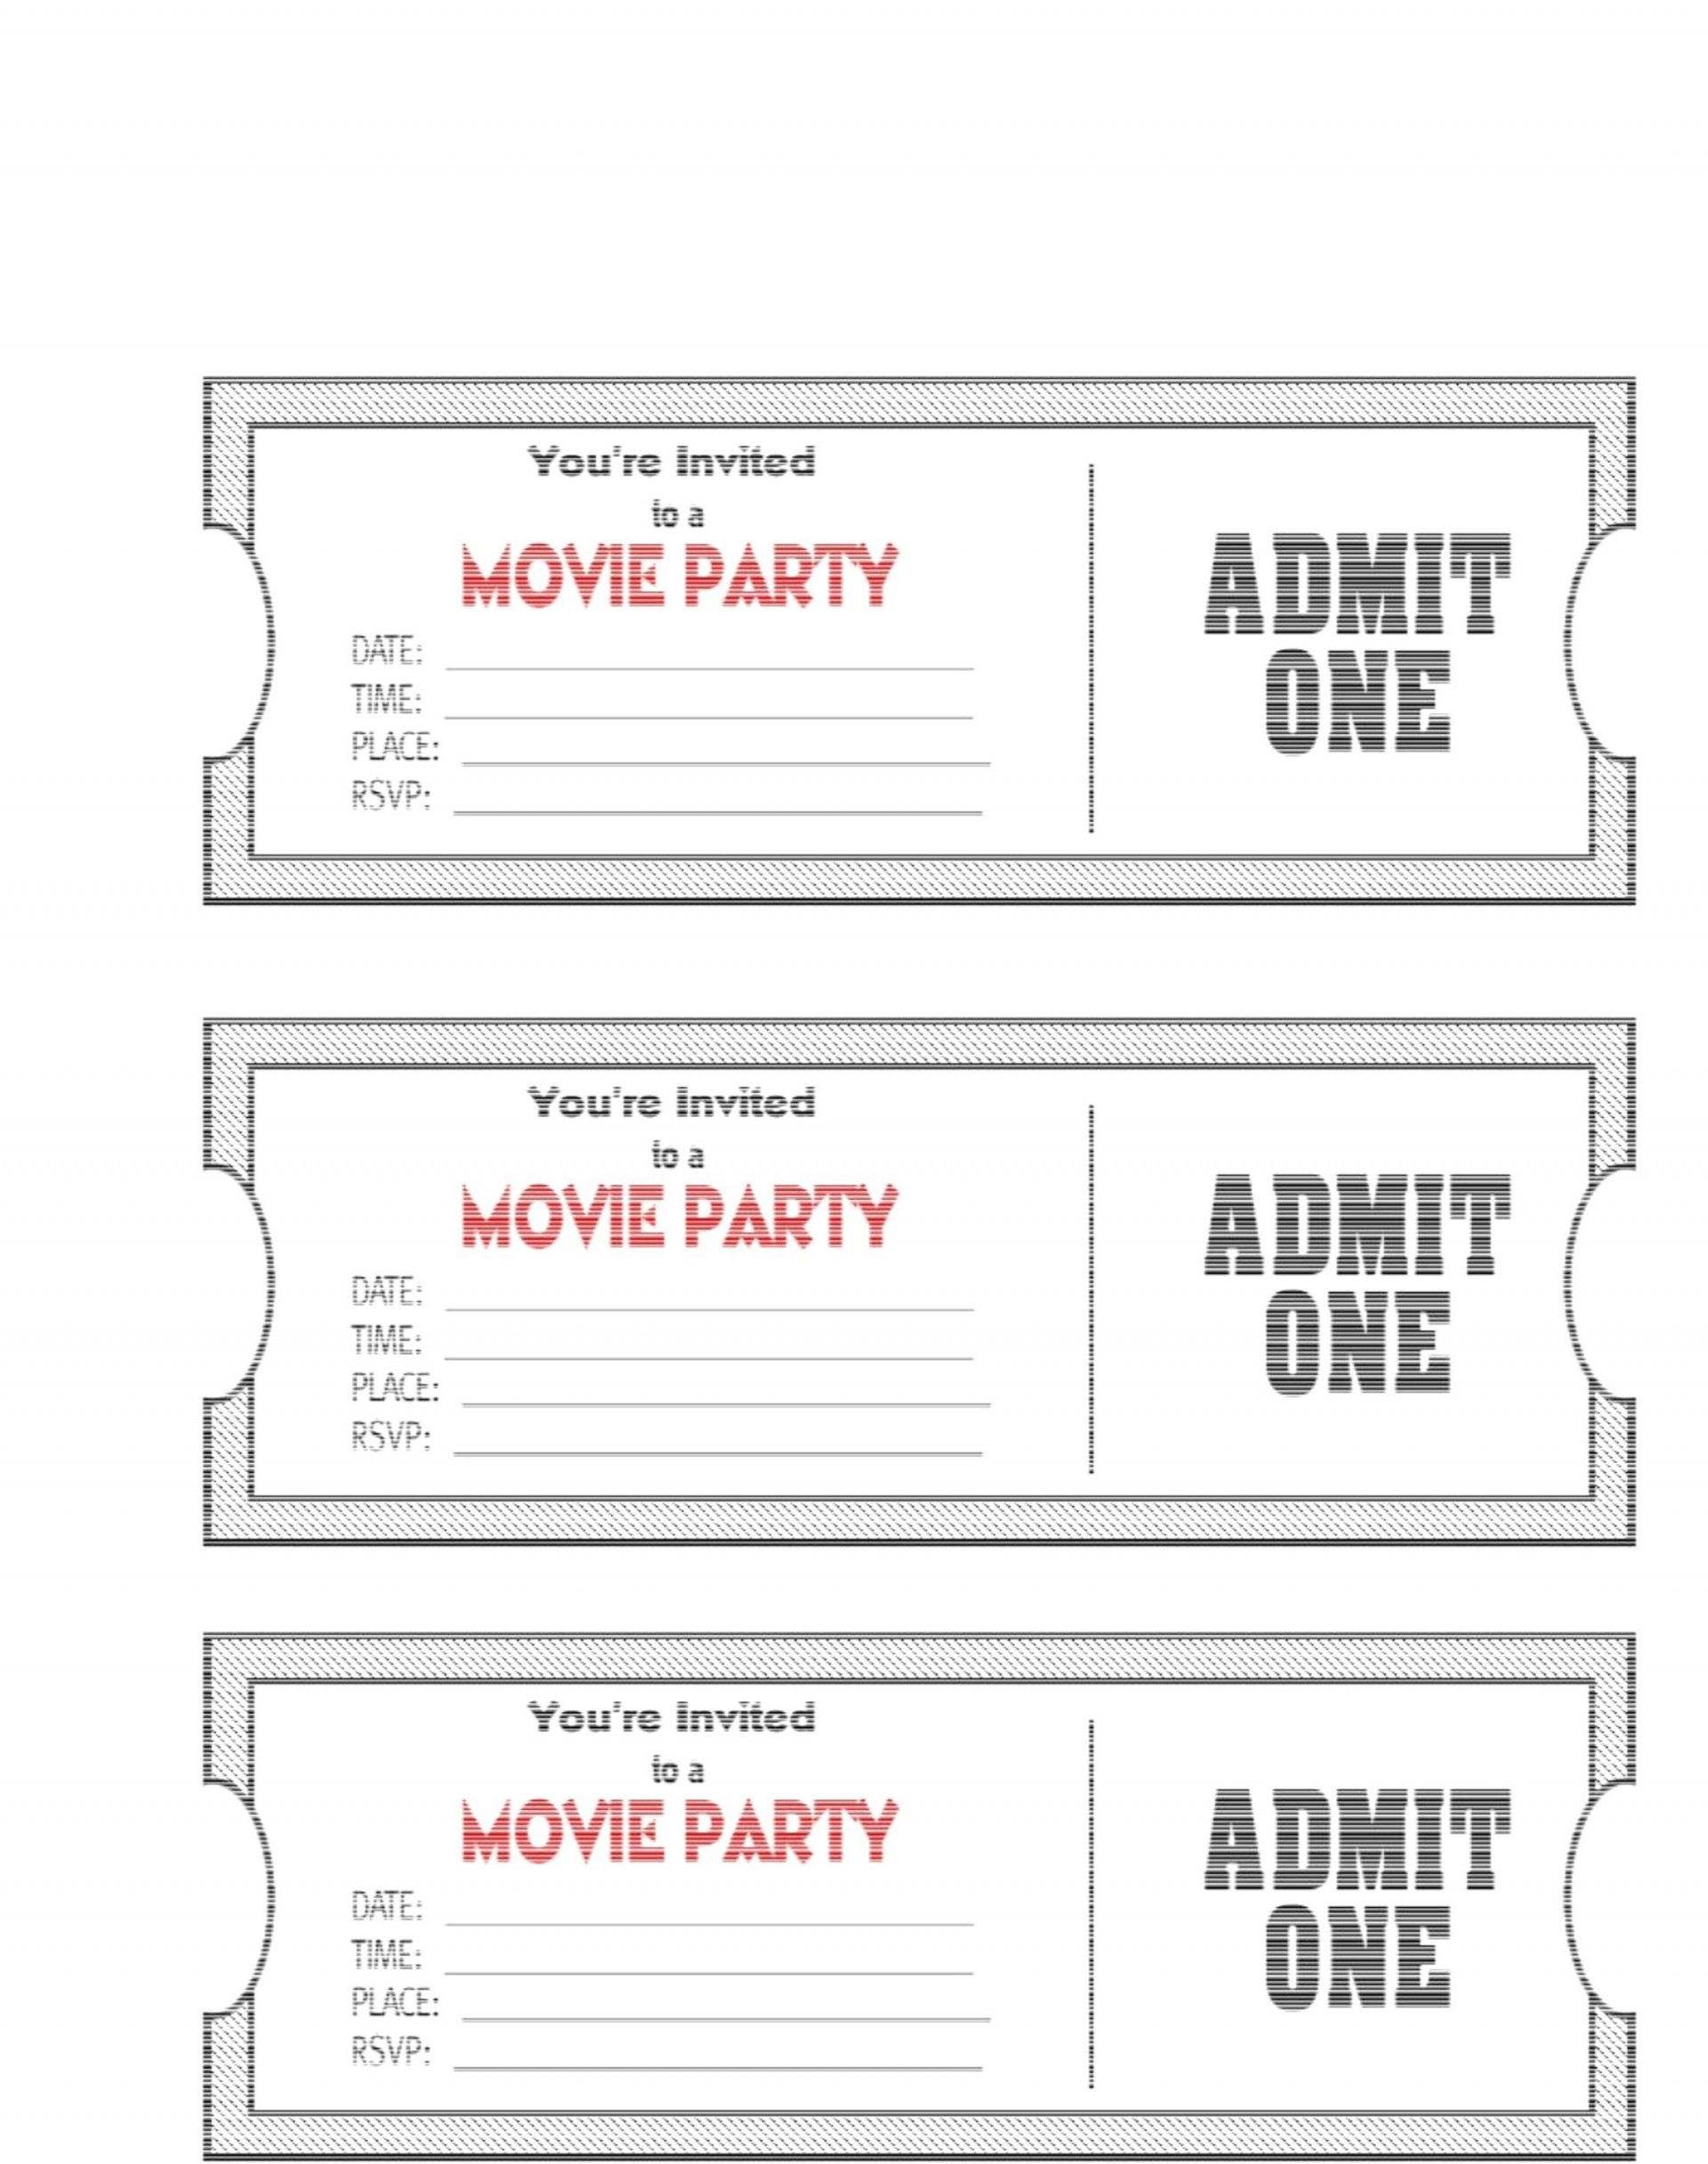 002 Sensational Free Printable Ticket Template High Def  Editable Airline Christma For Gift1920